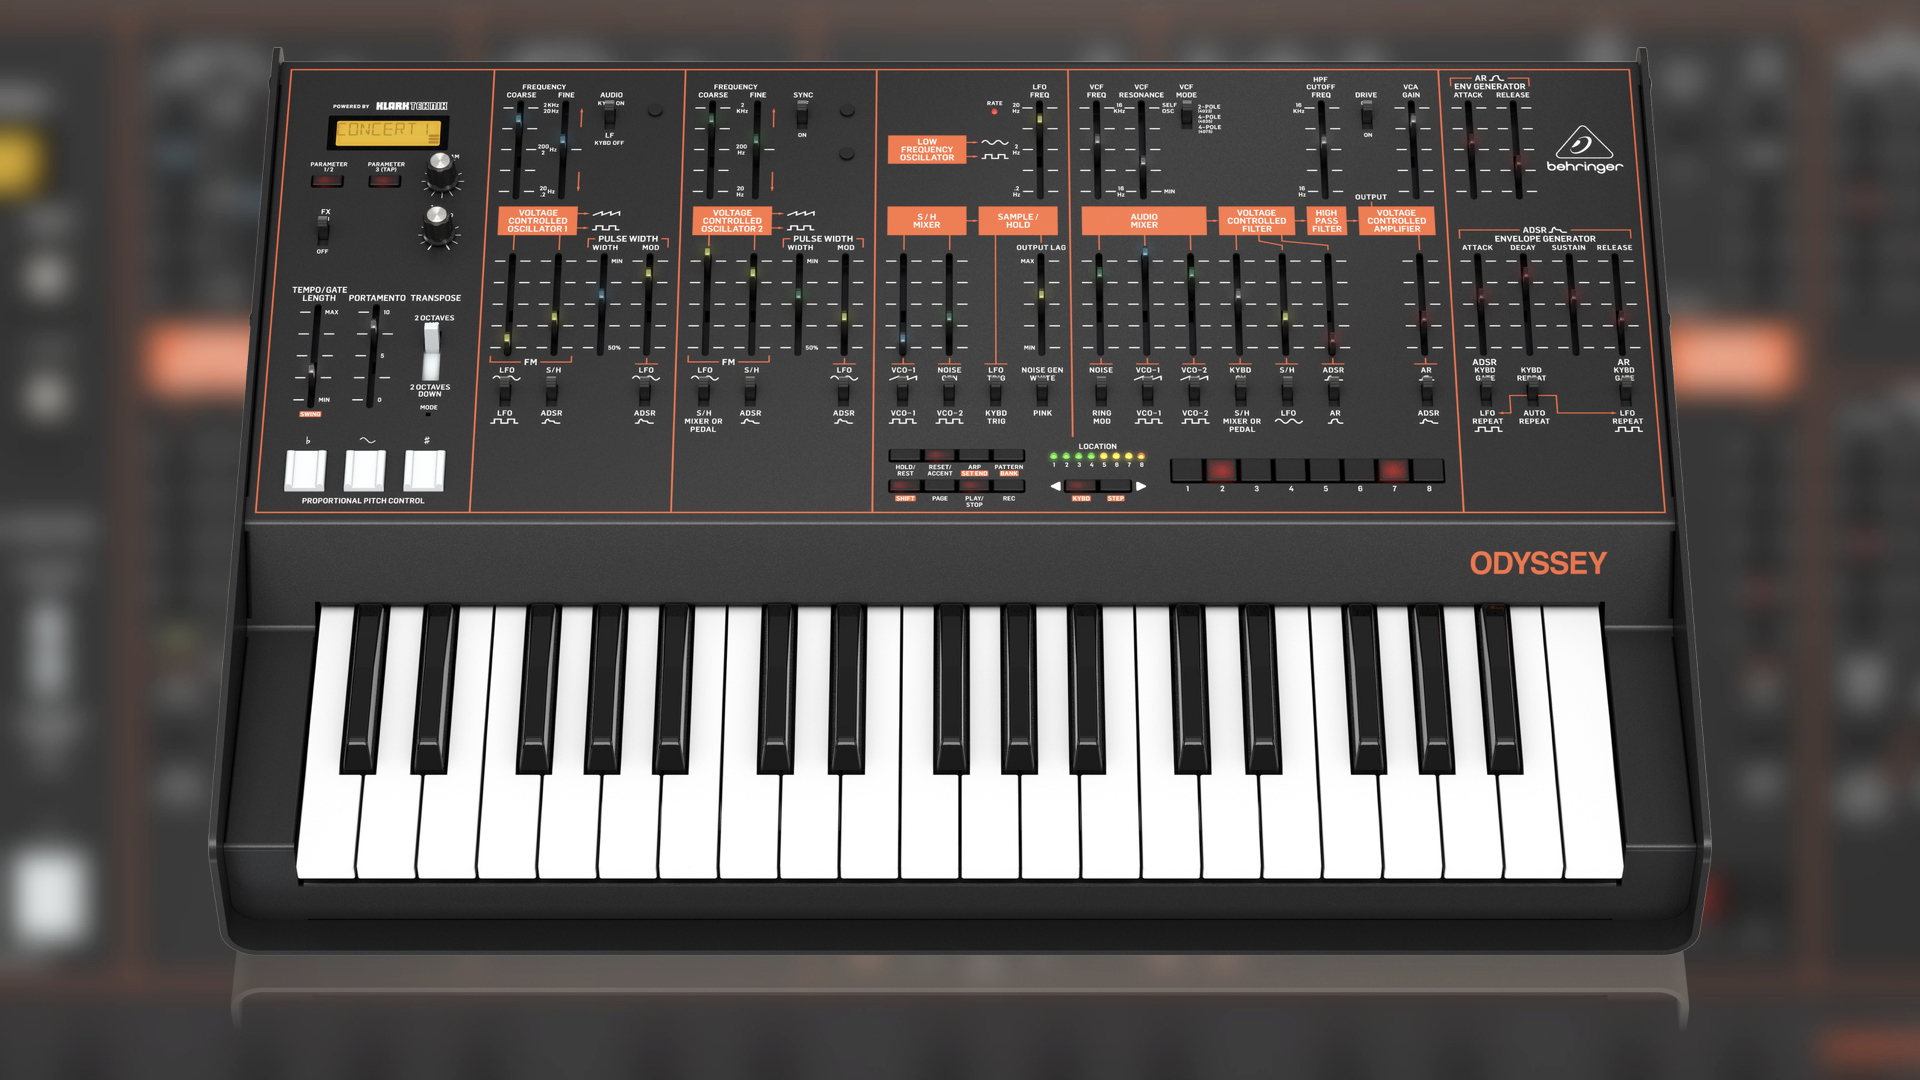 behringer odyssey synthesizer is on the way to the music shops